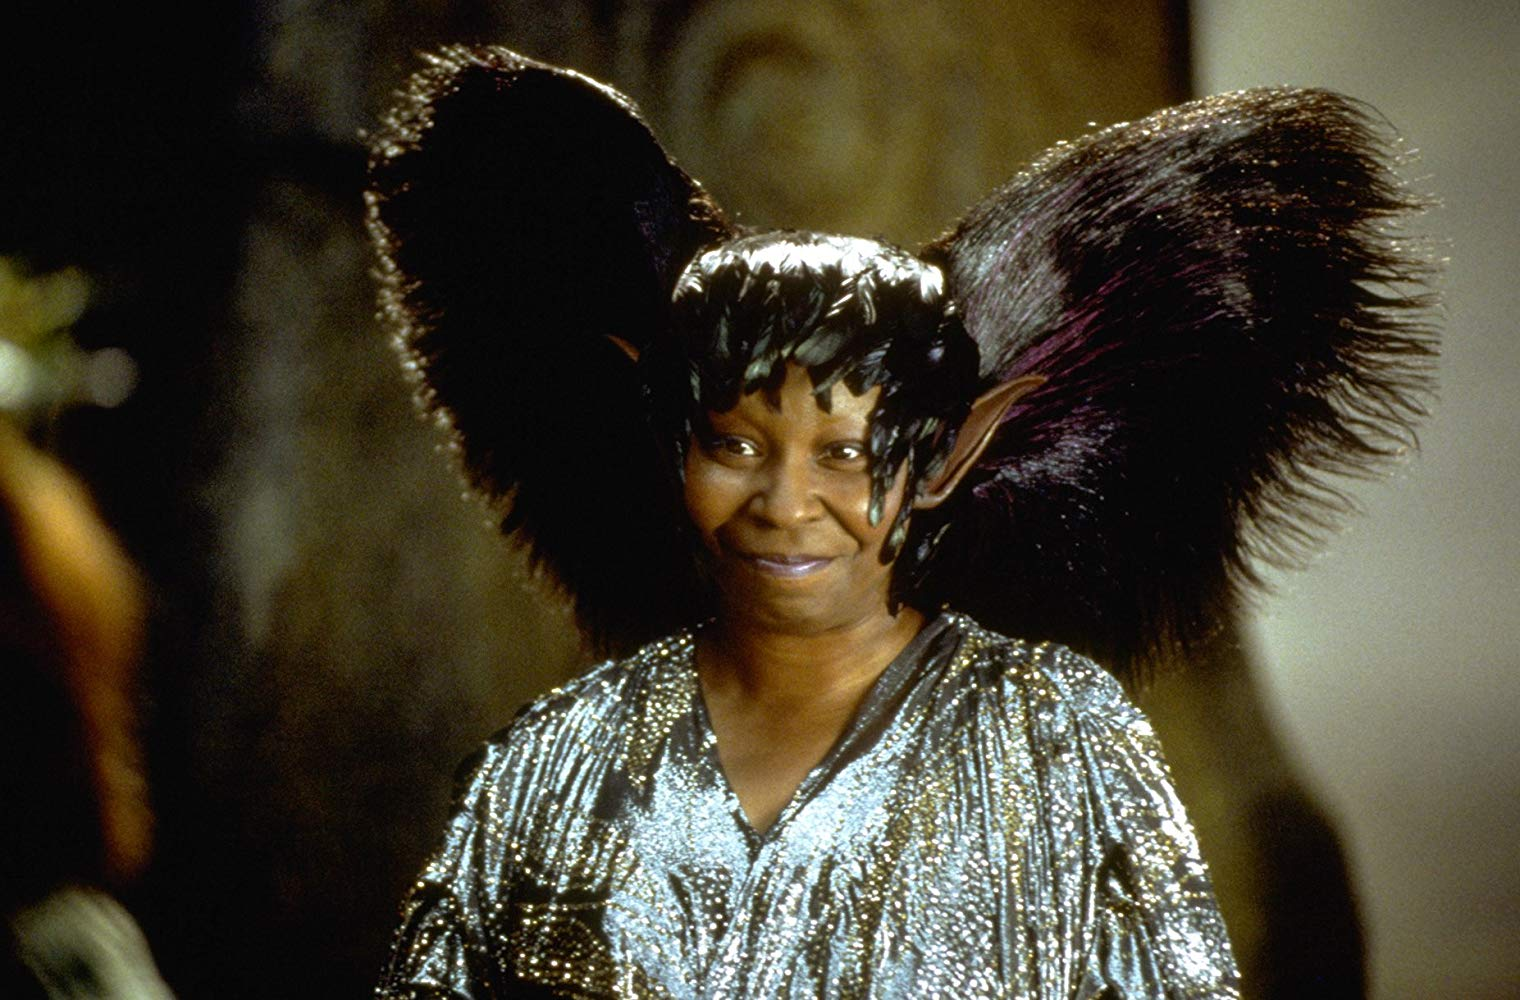 Whoopi Goldberg as The Grand Banshee in The Magical Land of the Leprechauns (1999)